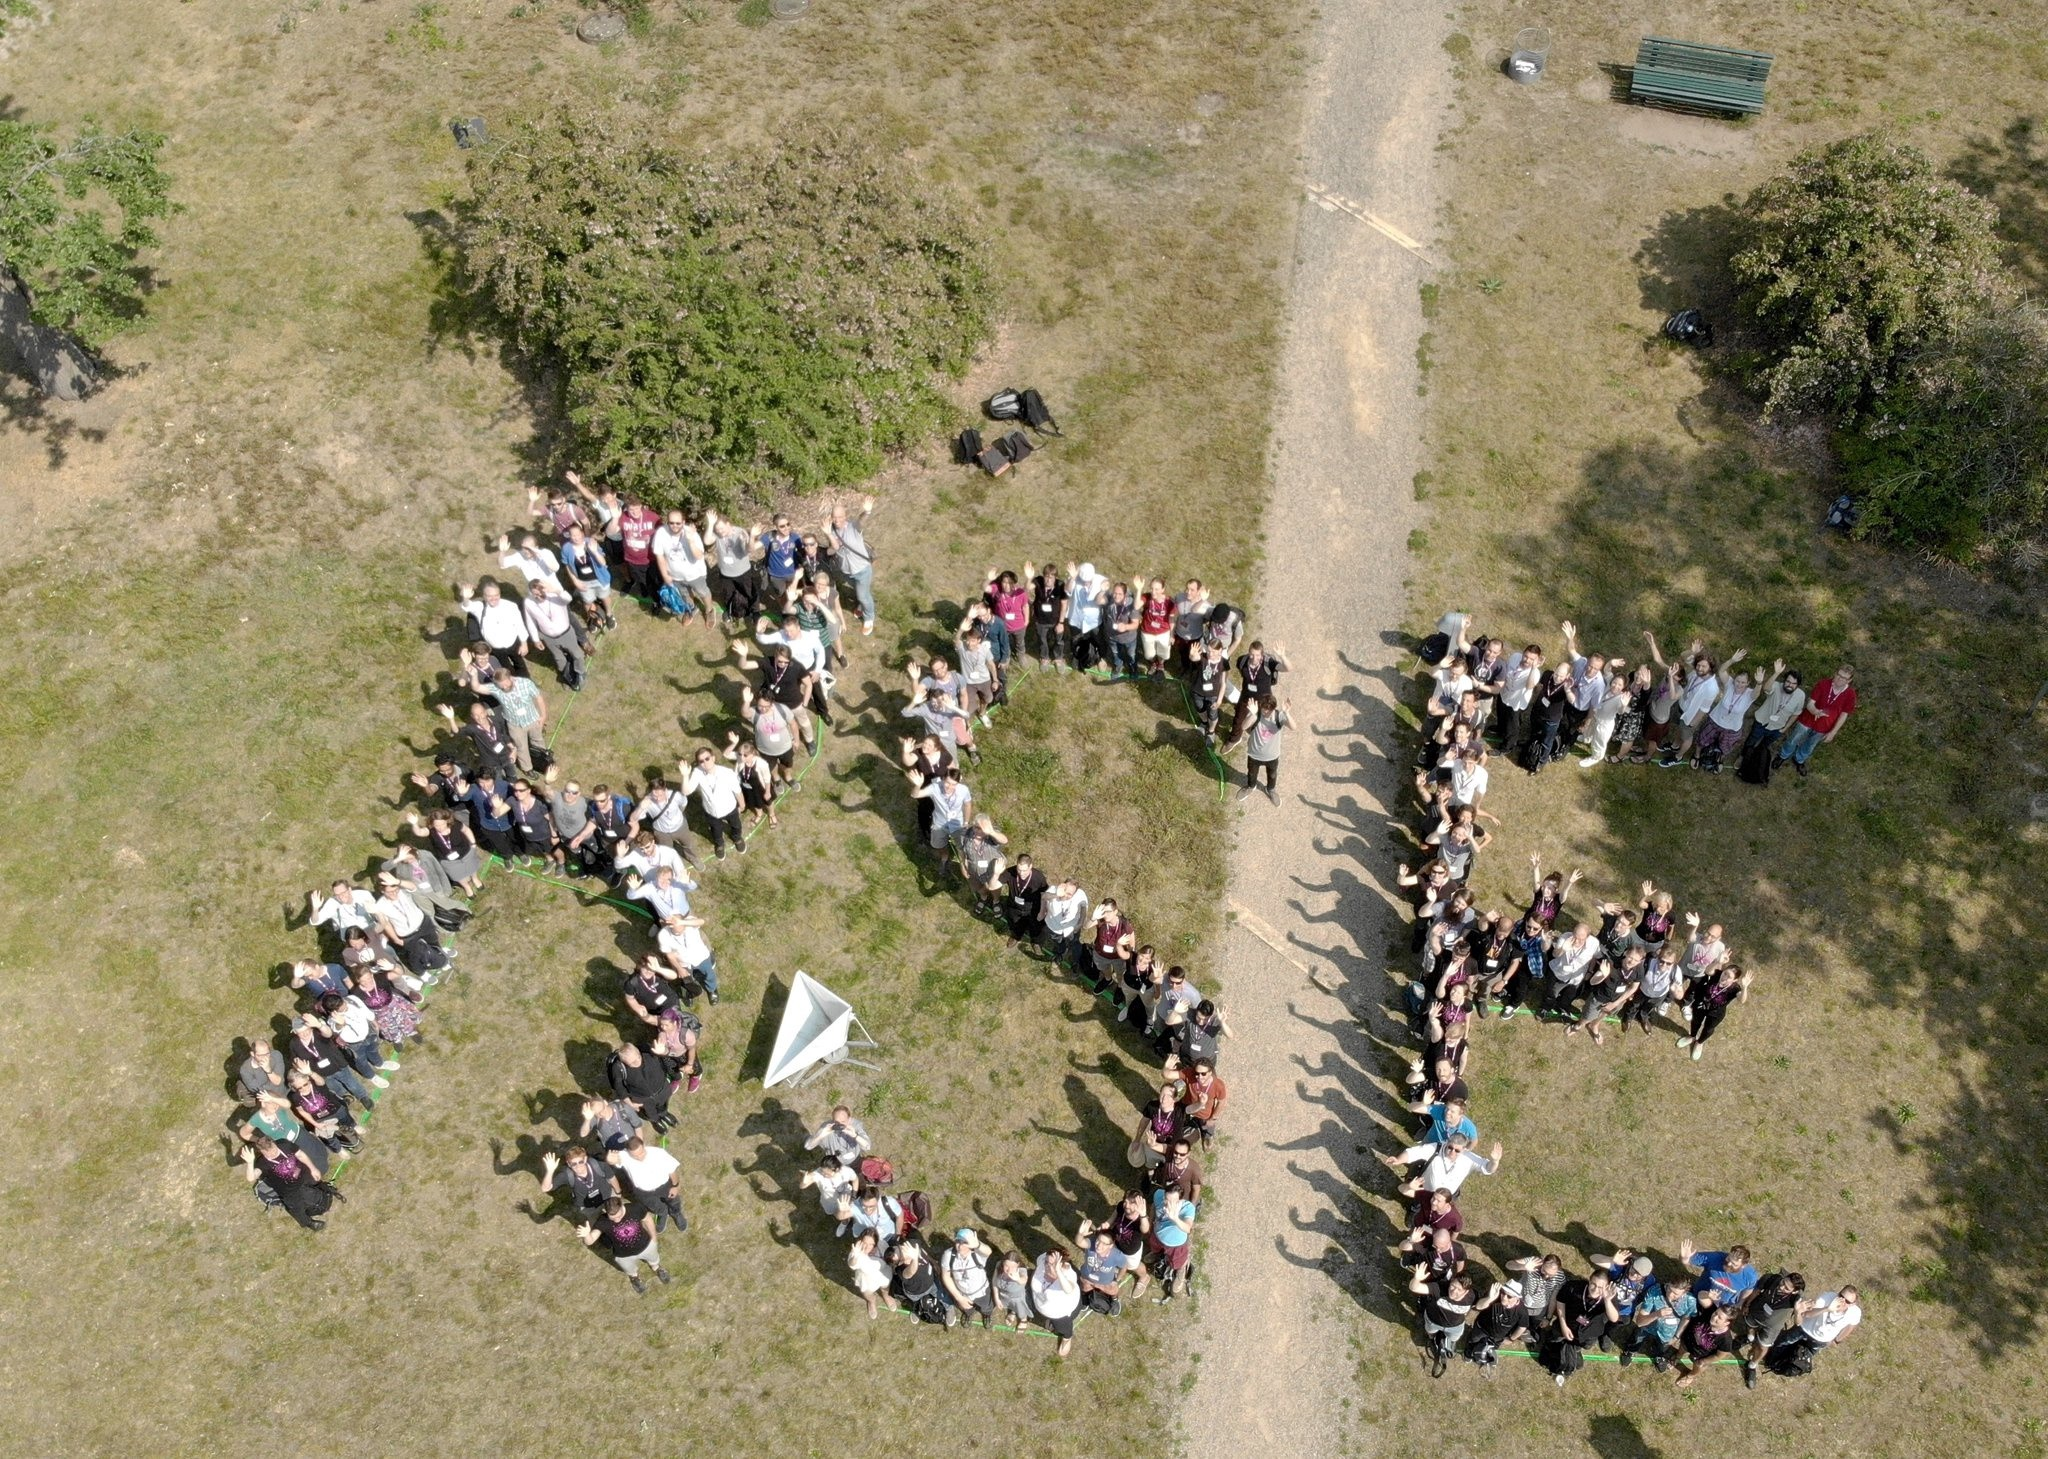 deRSE19 aerial group photo (CC-BY Antonia Cozacu, Jan Philipp Dietrich, de-RSE e.V.)